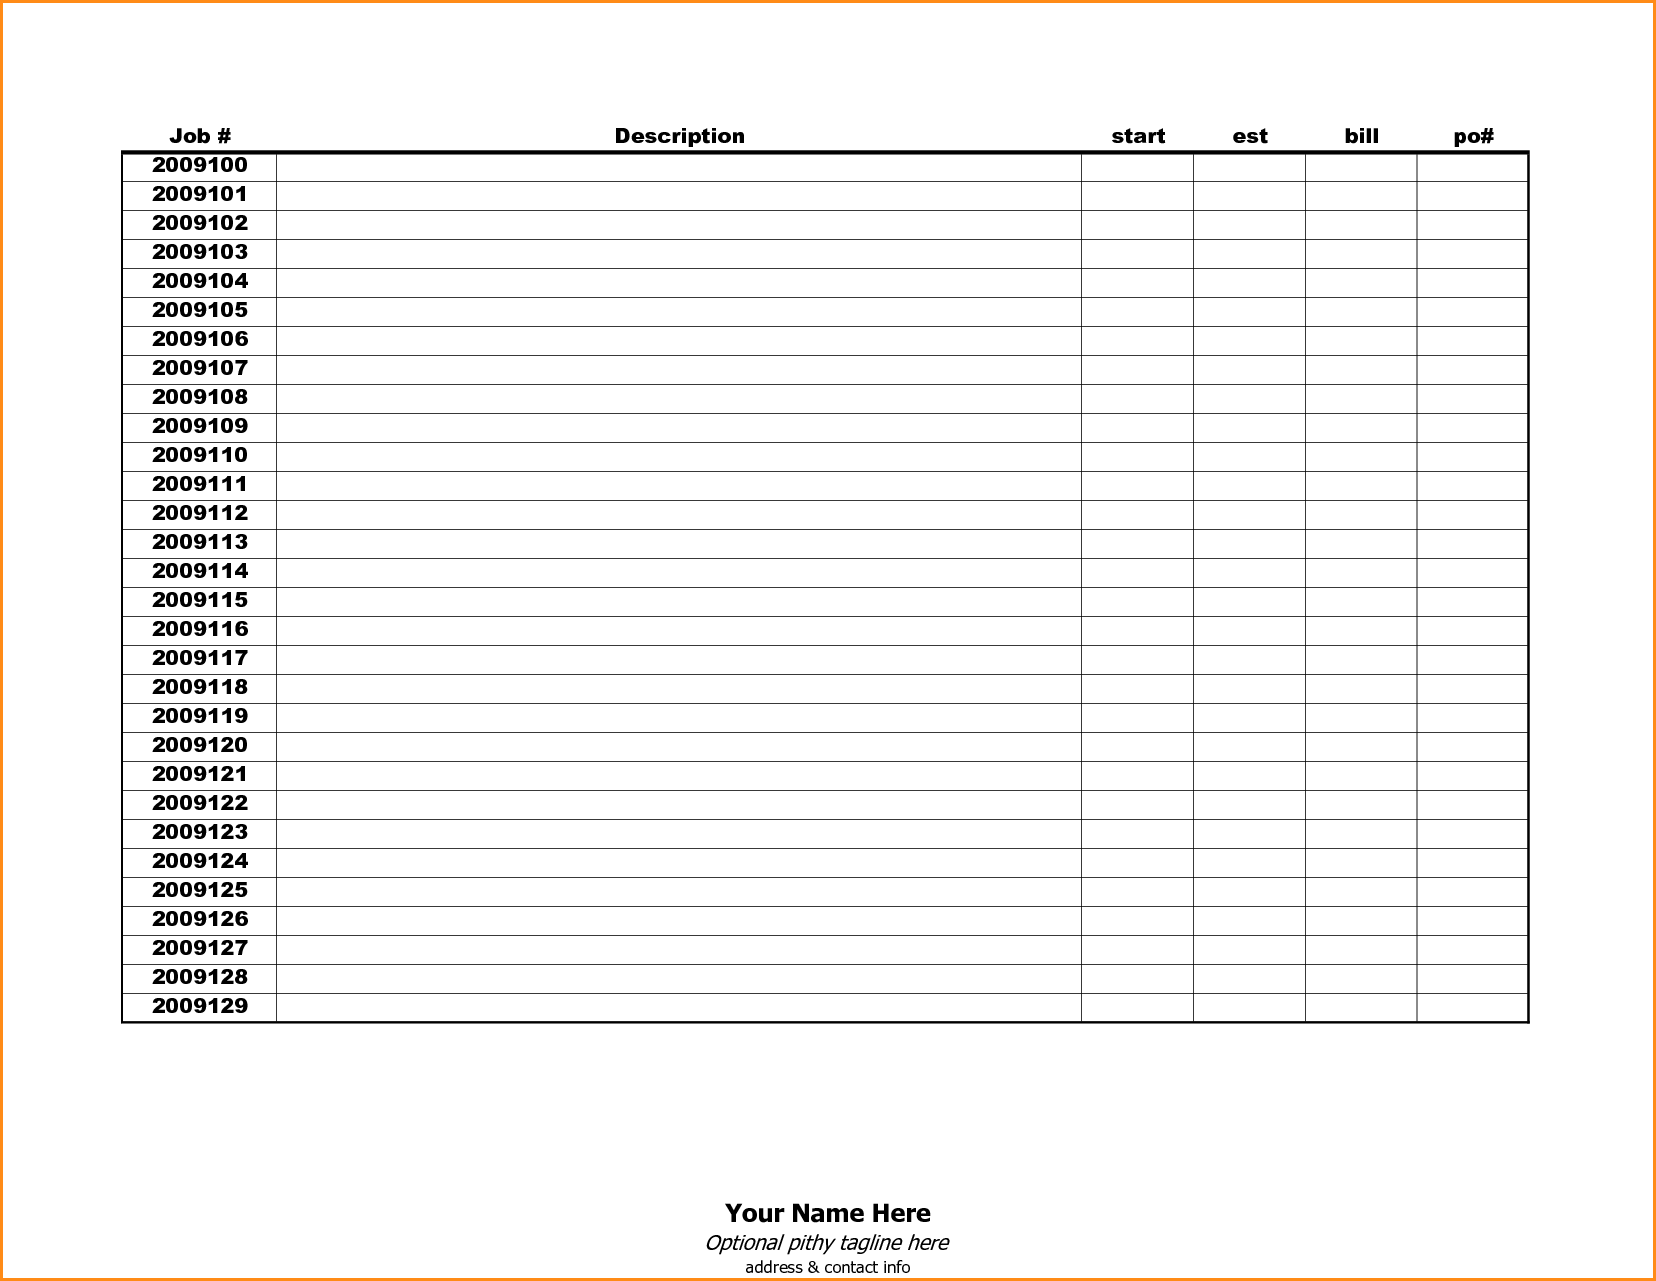 Funeral Bill Template and 100 Po Excel Template Export Purchase order Data to Ms Excel